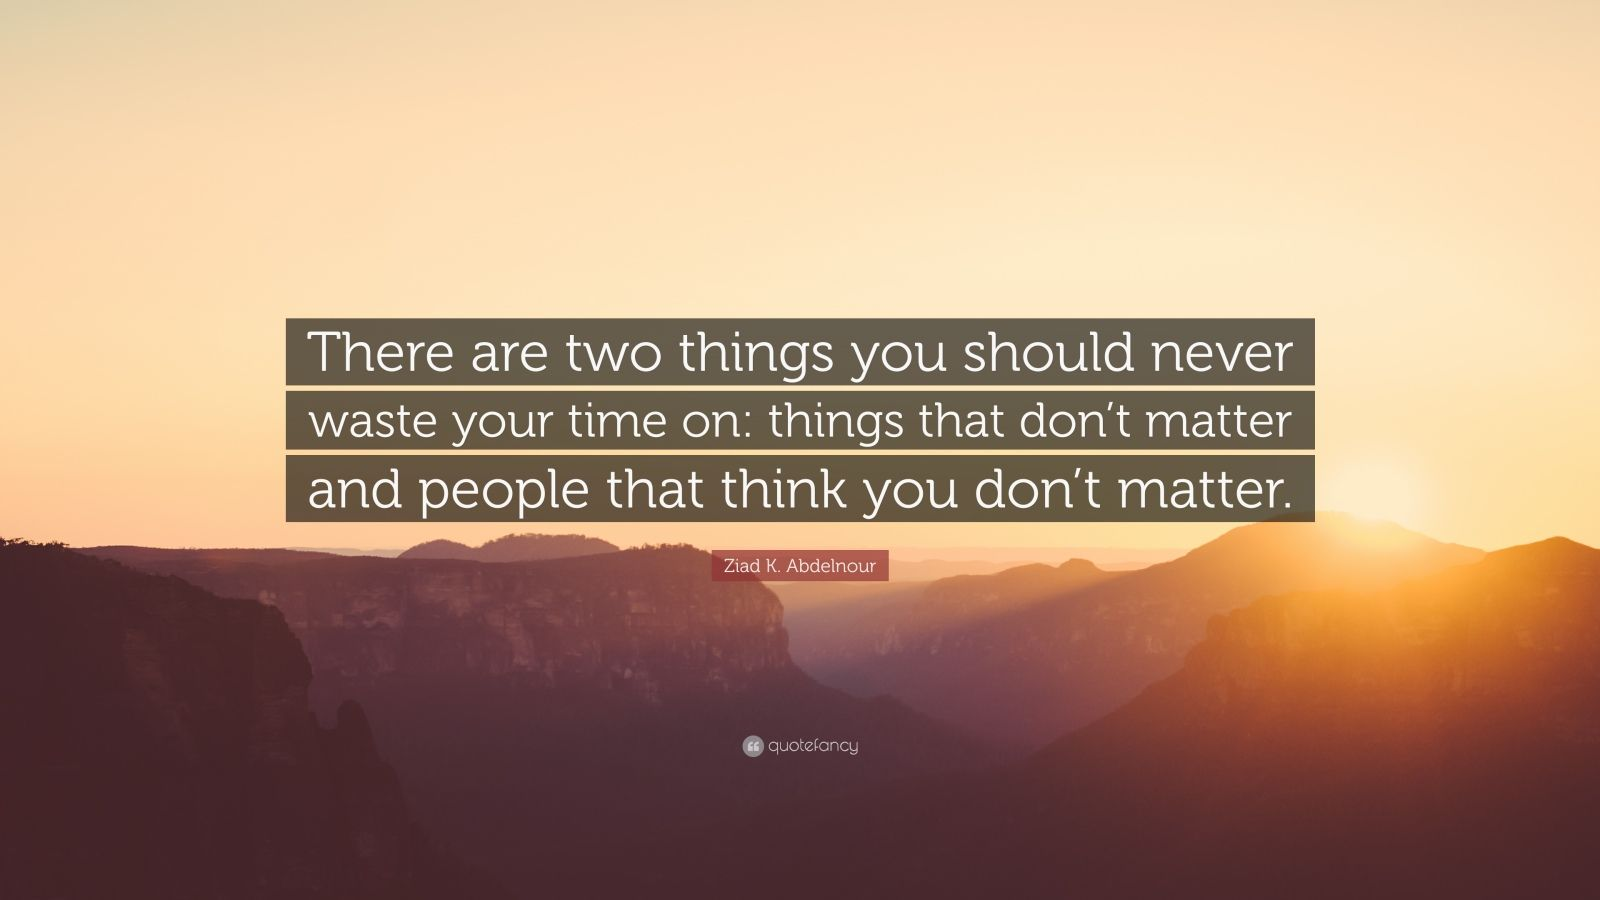 """Ziad K. Abdelnour Quote: """"There are two things you should never waste your time on: things that don't matter and people that think you don't matter."""""""